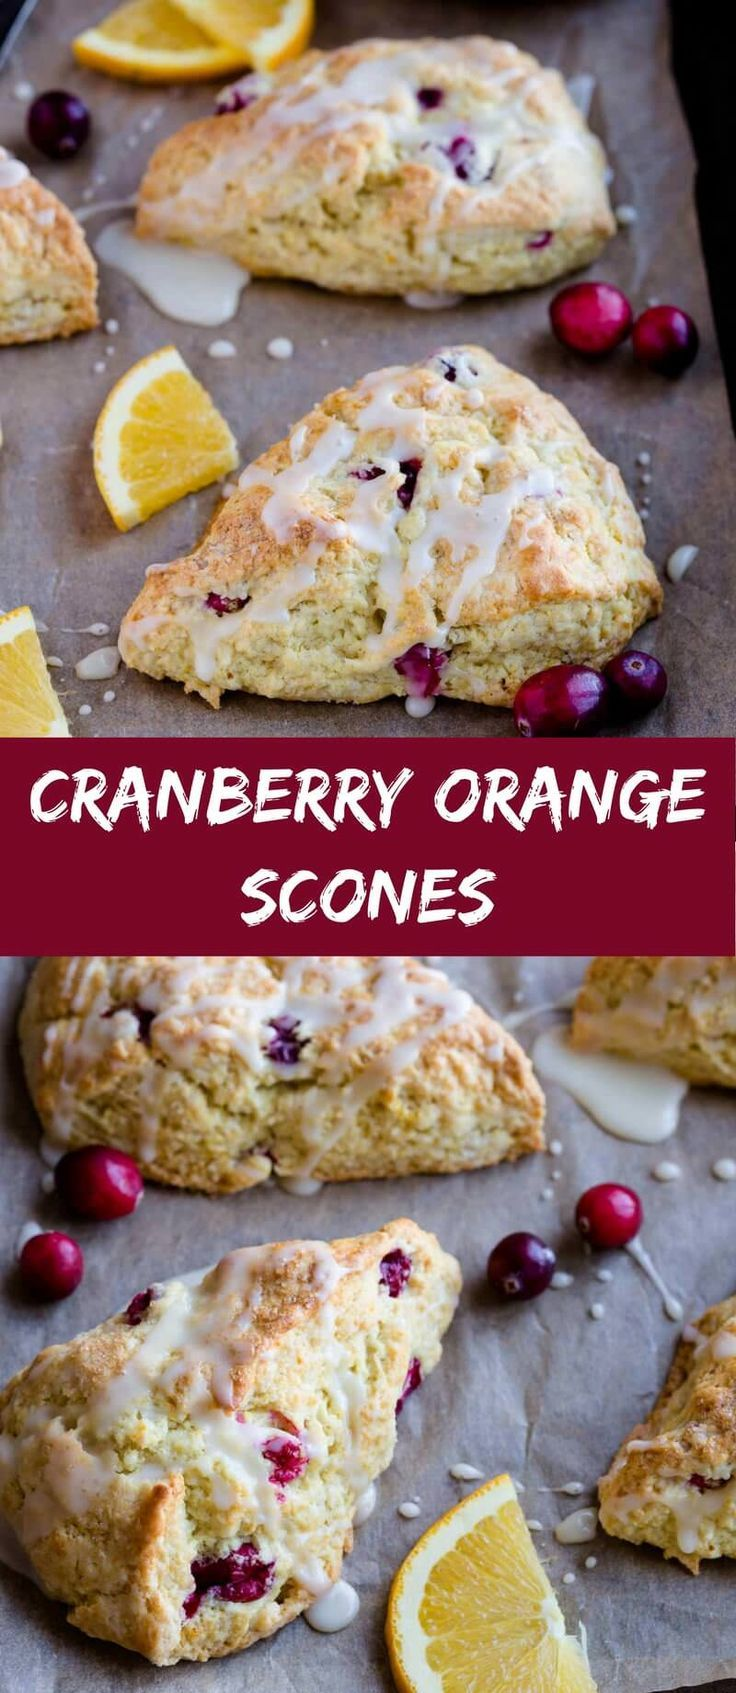 These Cranberry Orange Scones are the best fall scones you'll ever have! This recipe yields tender, flaky, and ultra-moist scones. #cranberry #orange #scones